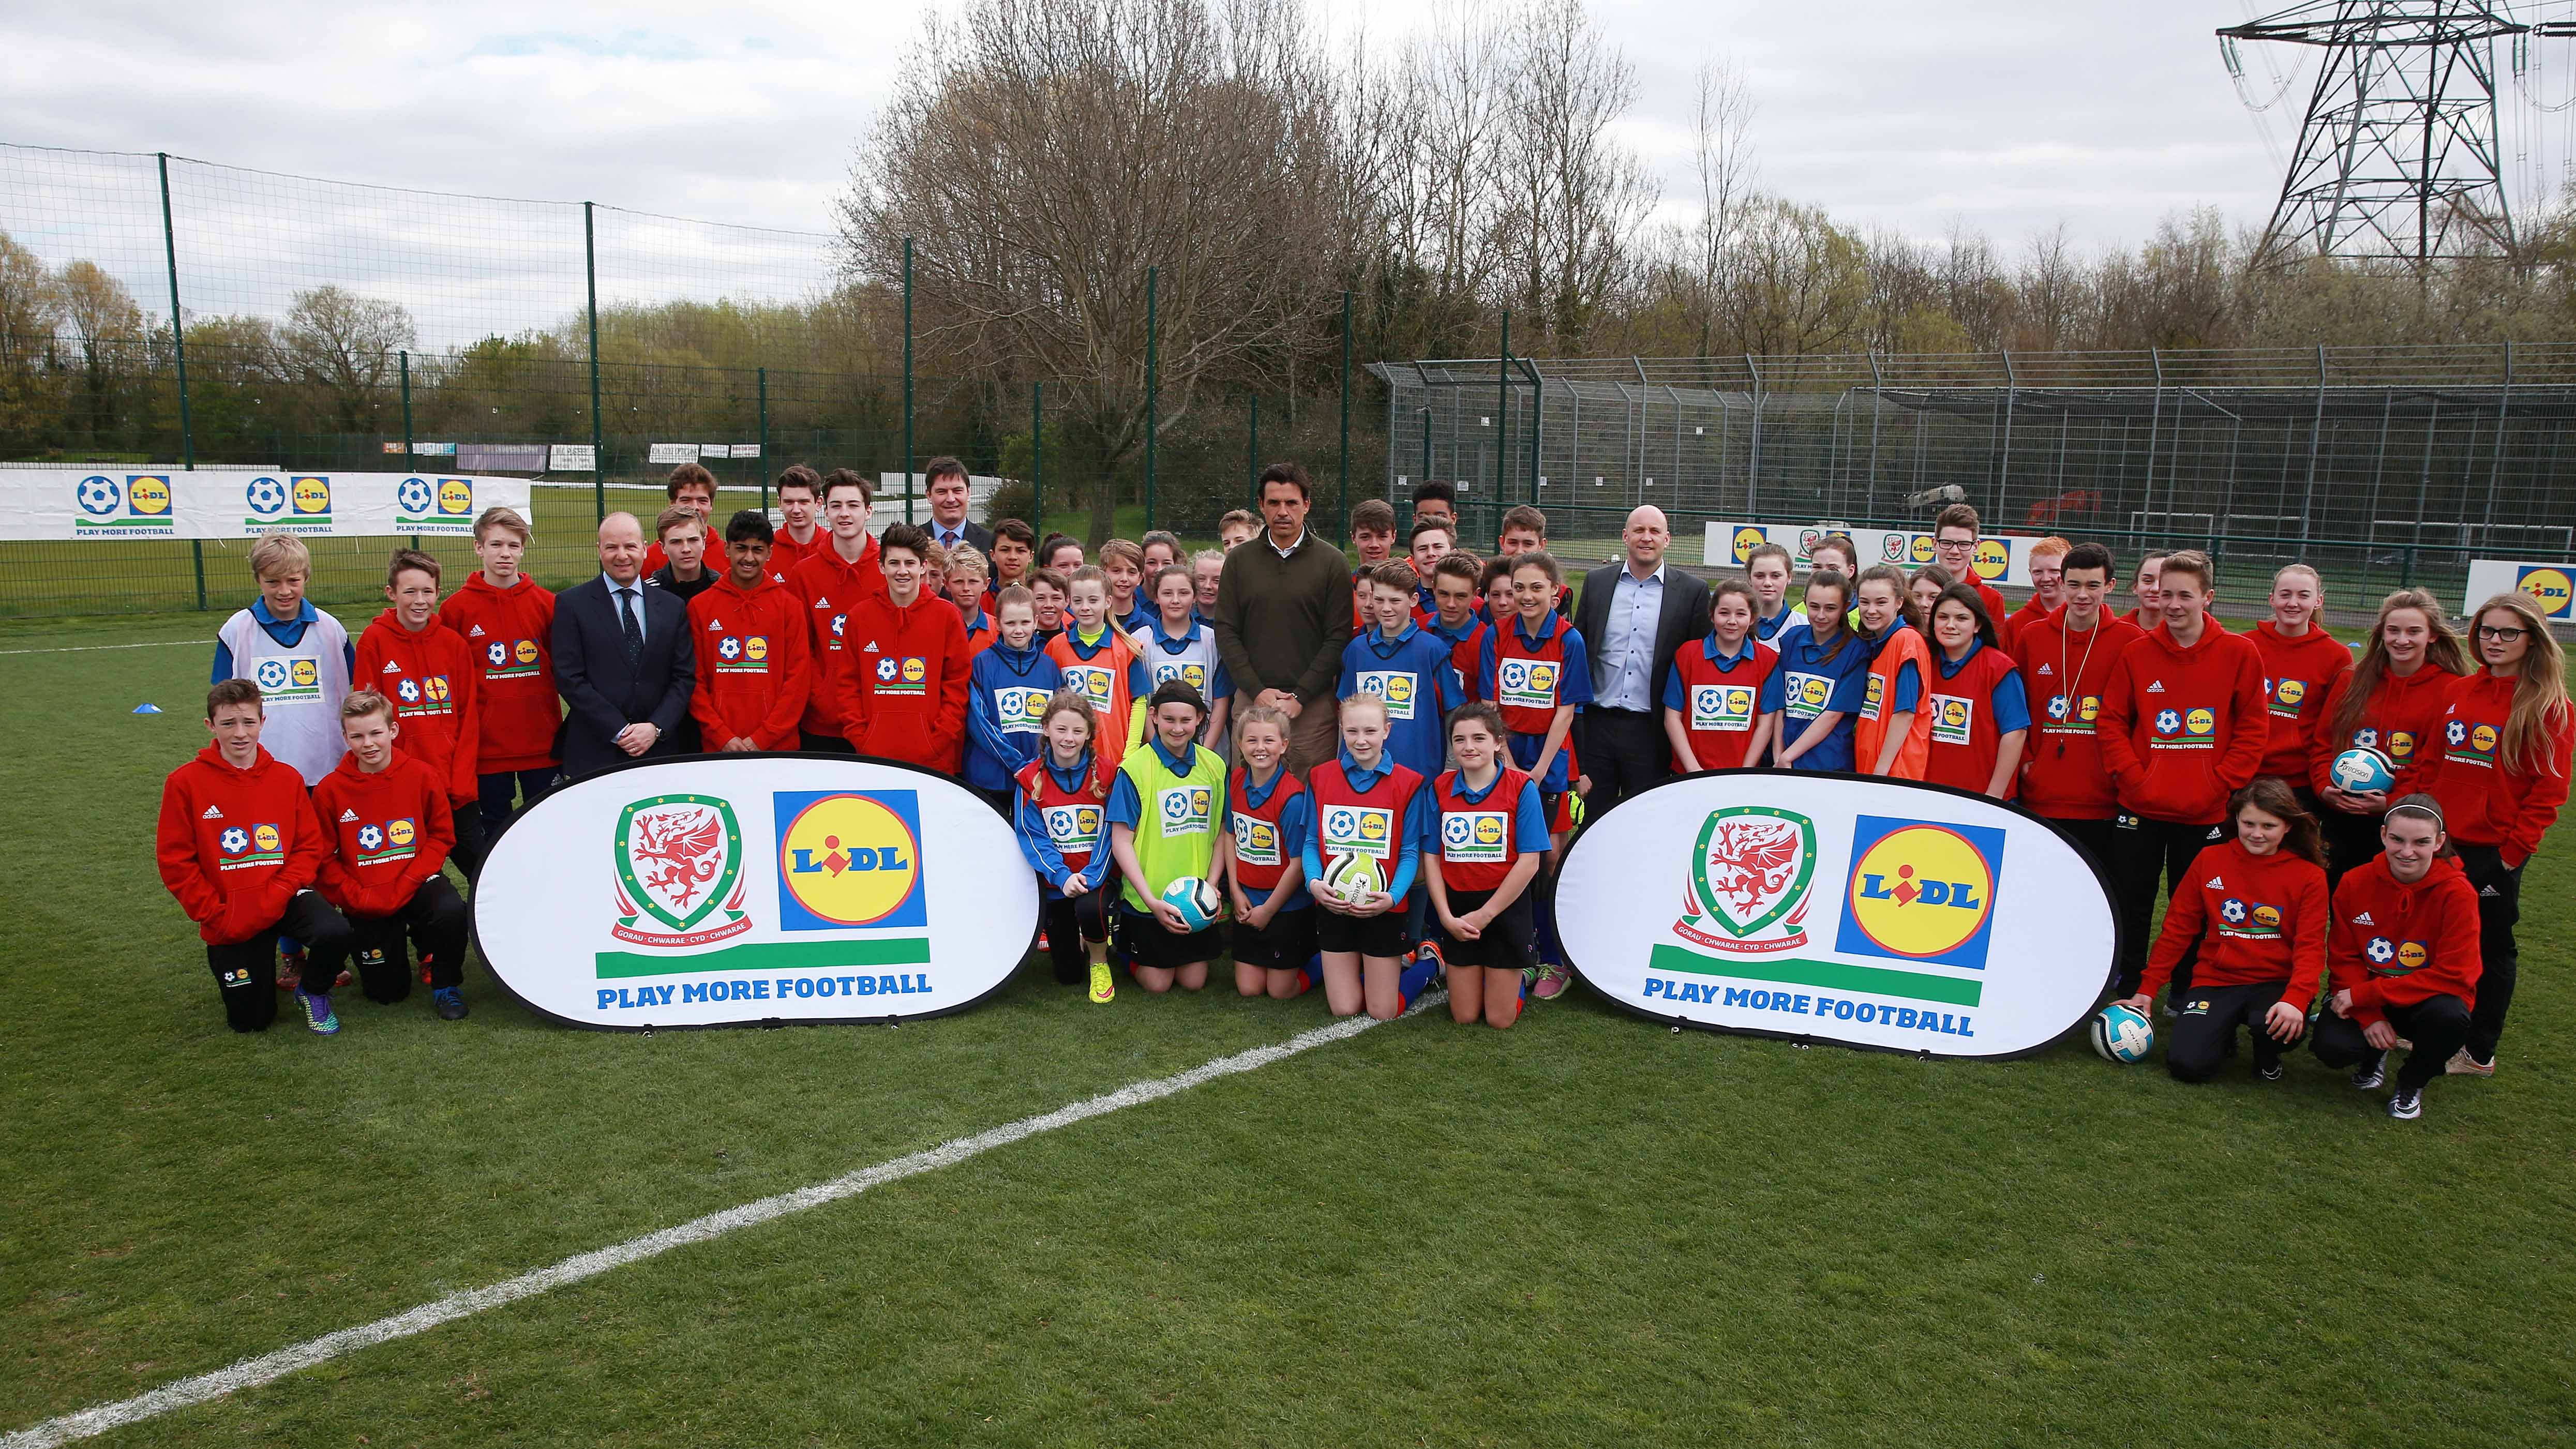 CHRIS COLEMAN JOINS LIDL AND FA OF WALES  TO LAUNCH GROUND-BREAKING YOUTH FOOTBALL INITIATIVE